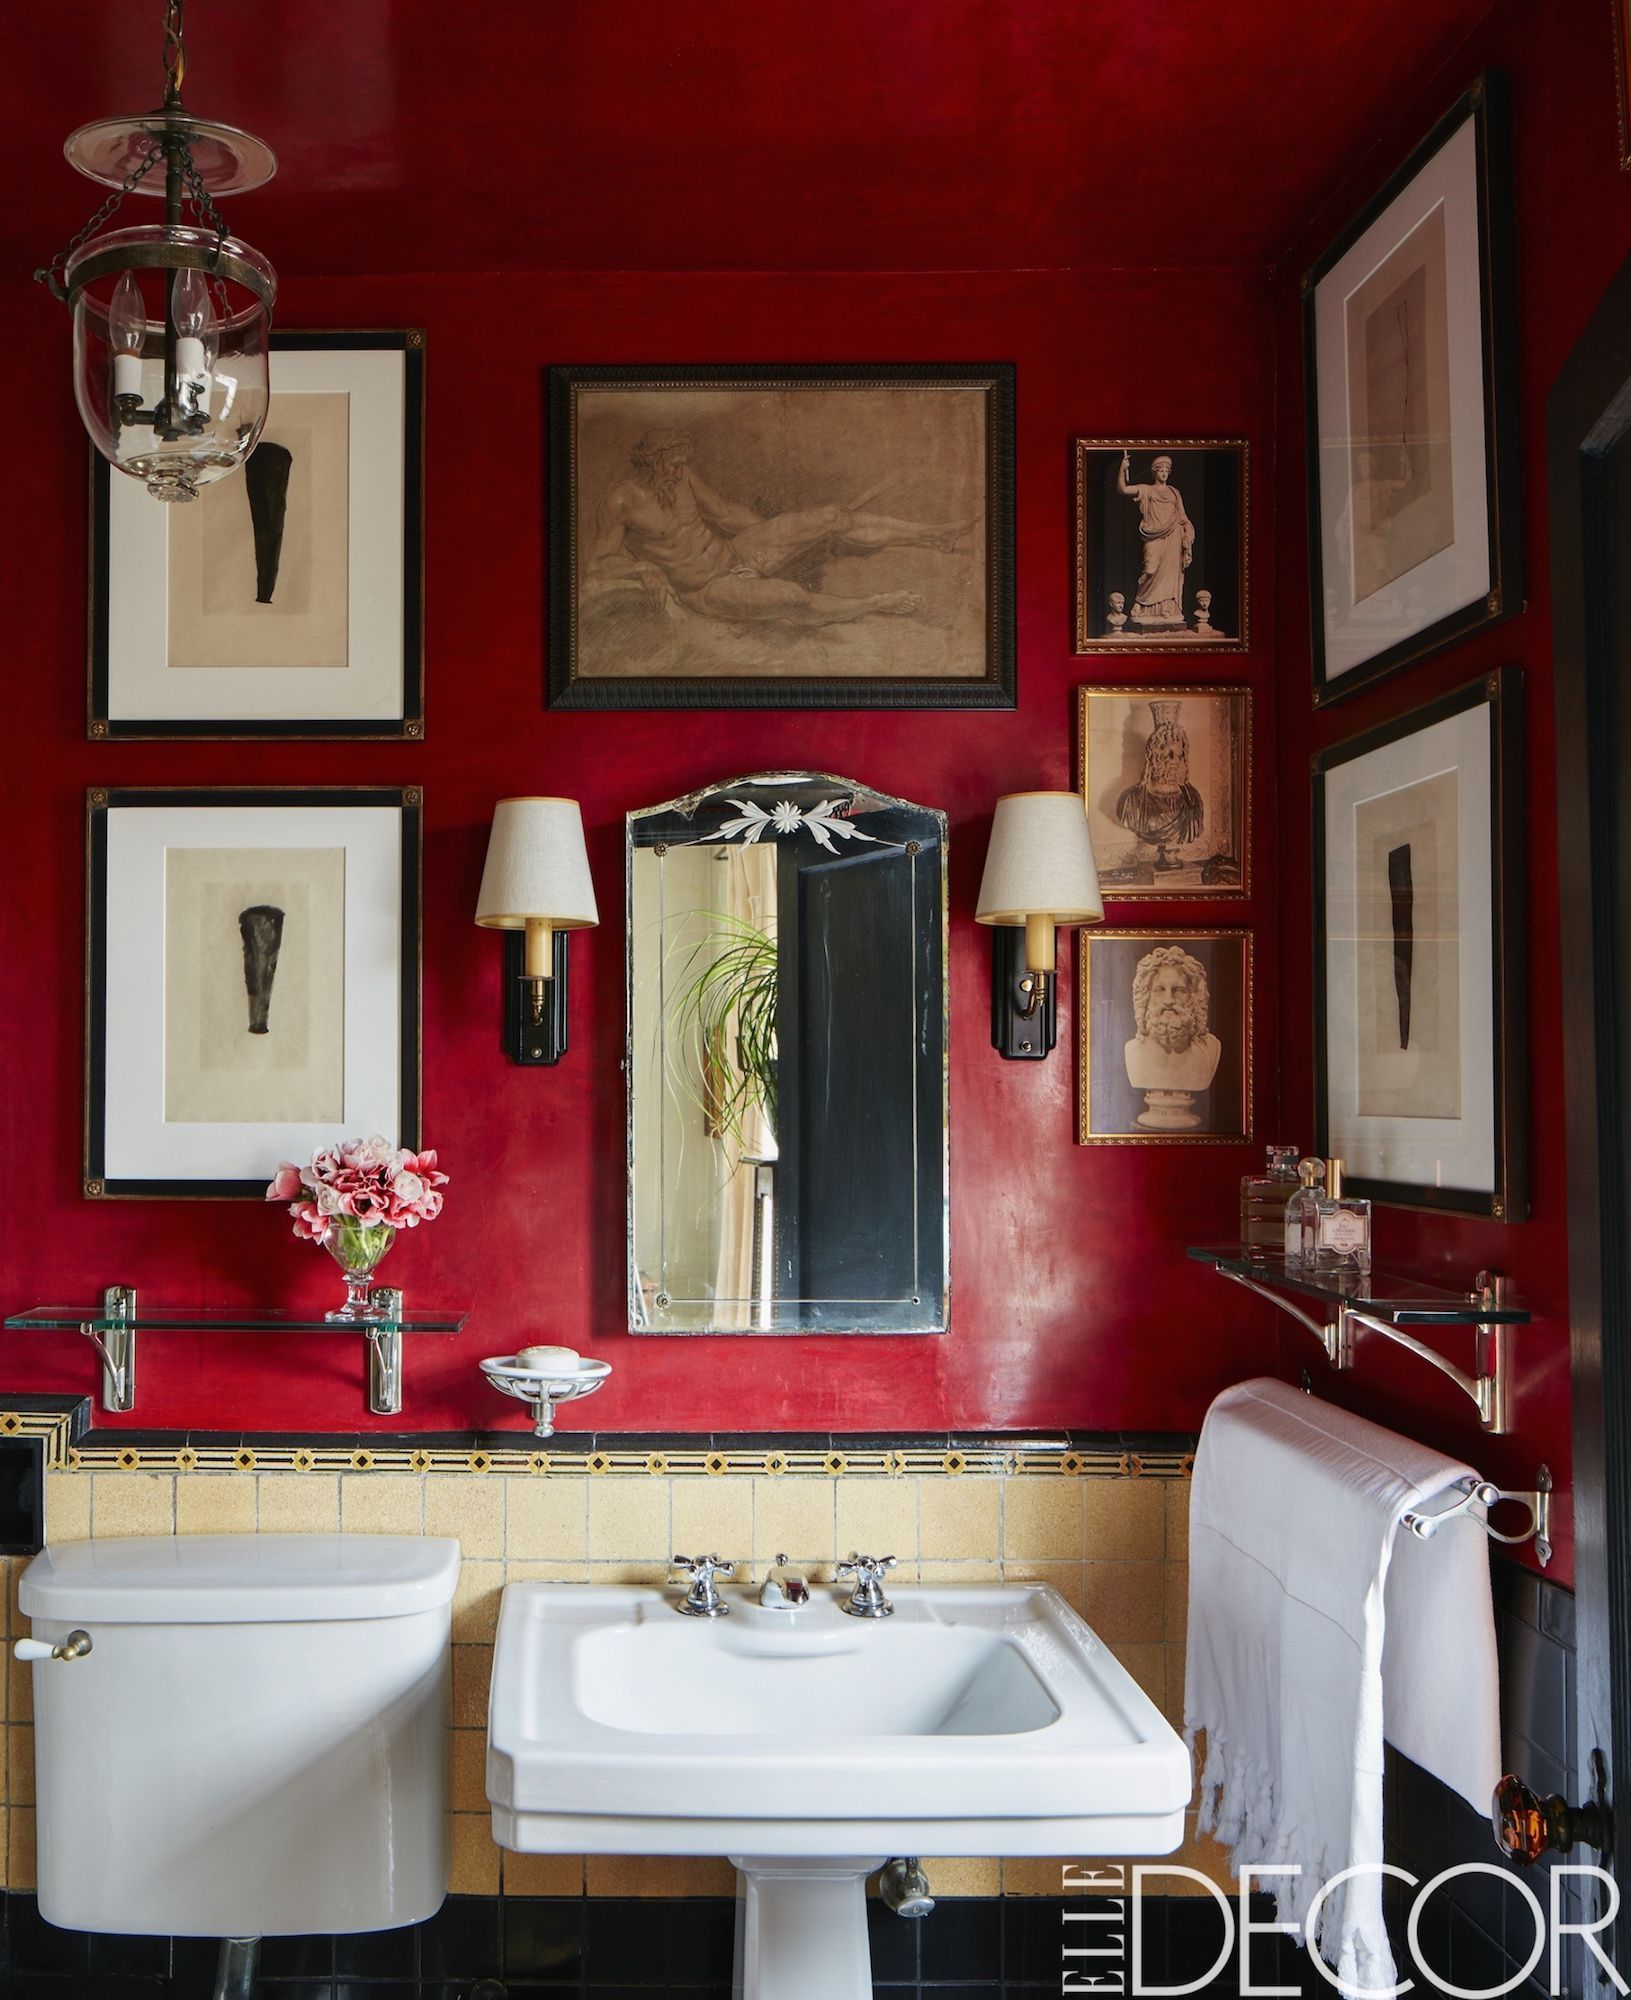 Bathroom Wall Design Ideas Part - 20: Stephen Kent Johnson. Rich Red Bathroom